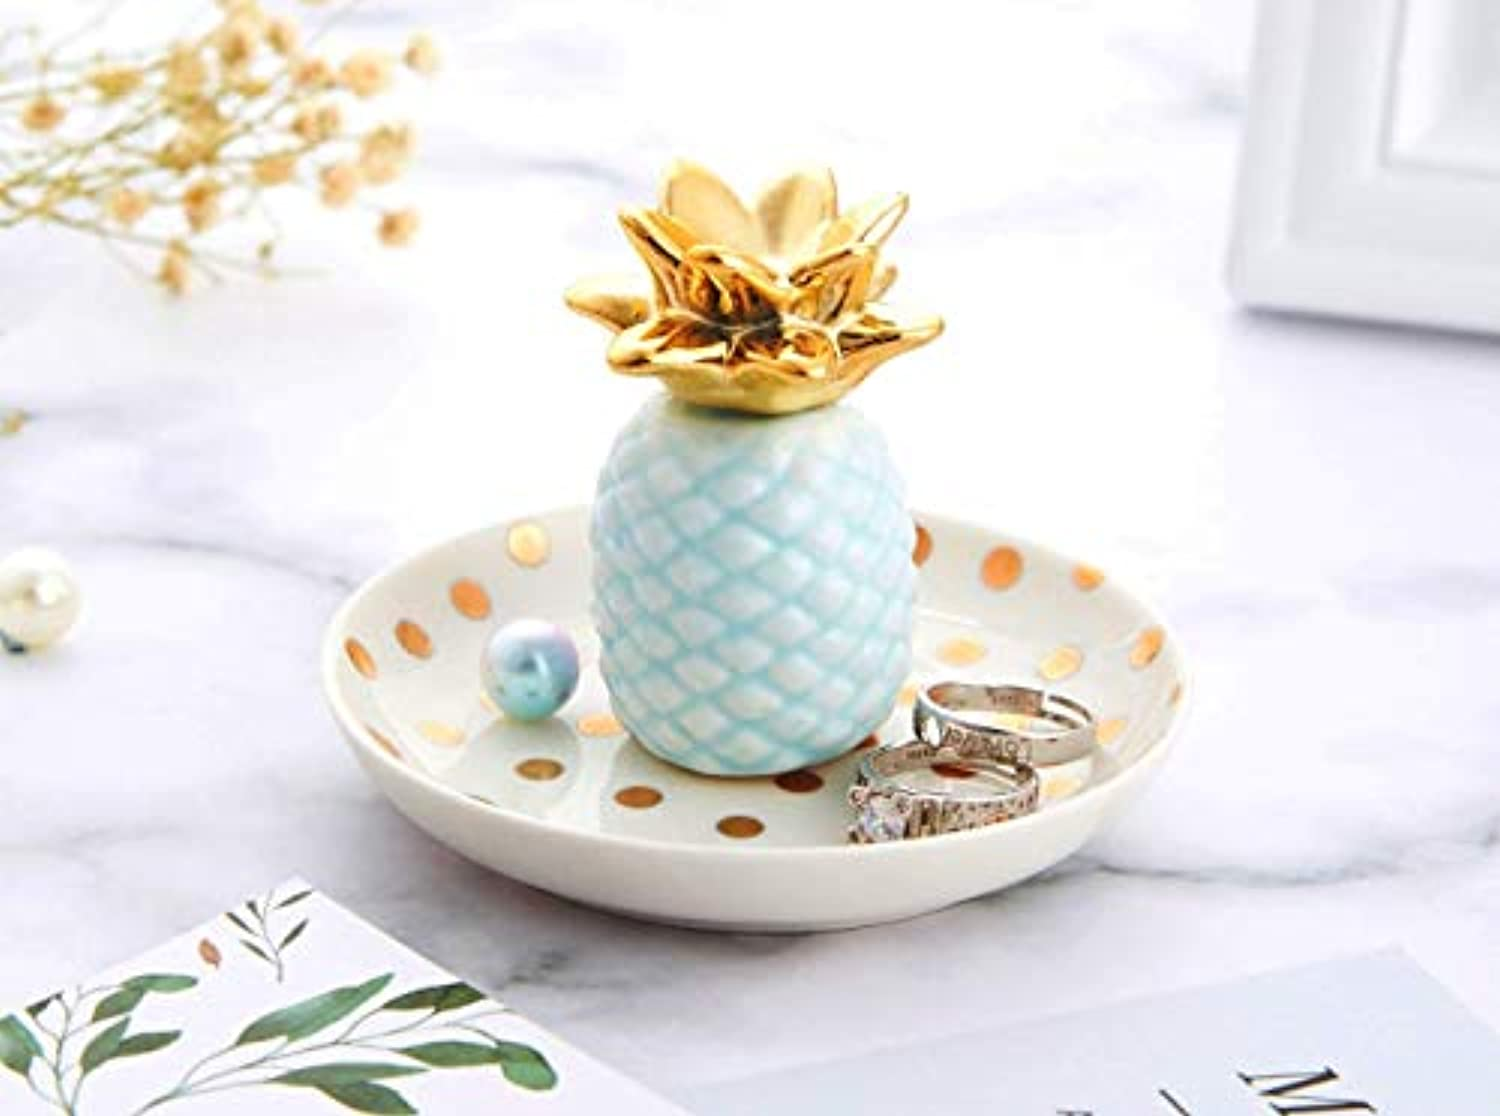 Blue Pineapple Jewelry Plate